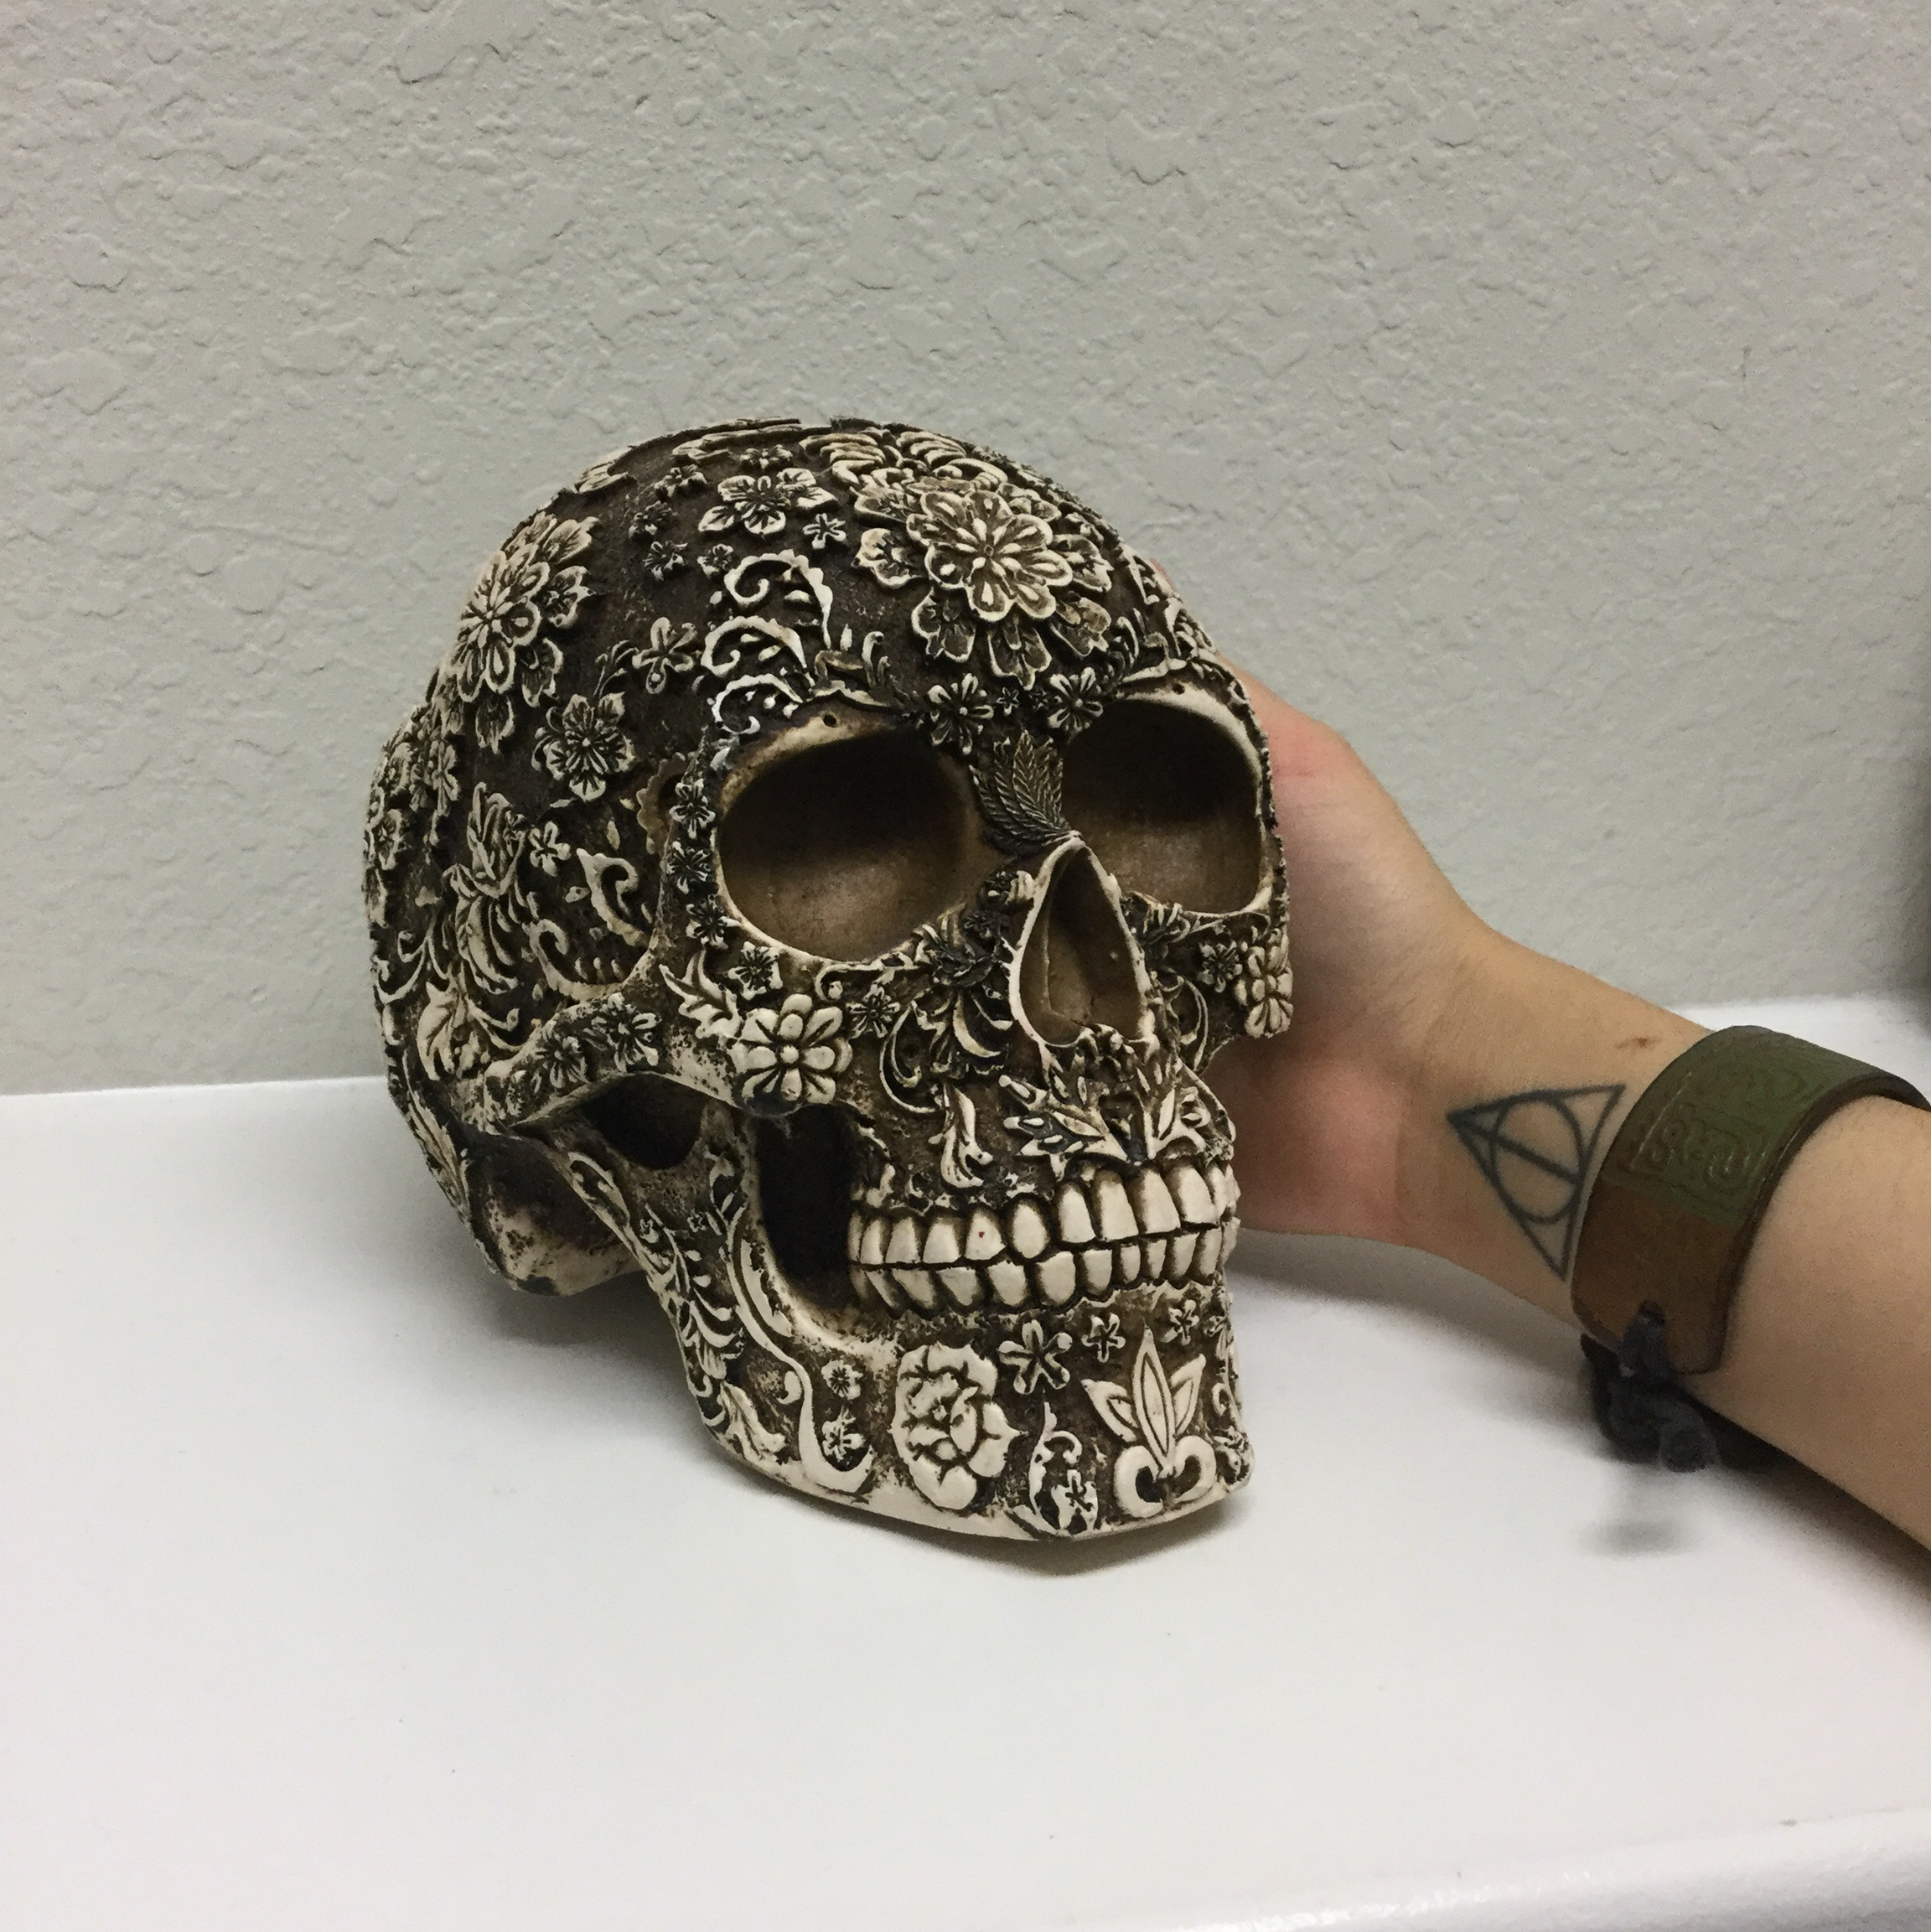 Hollow Whale Bone Carved Skull Purchased From Local Depop